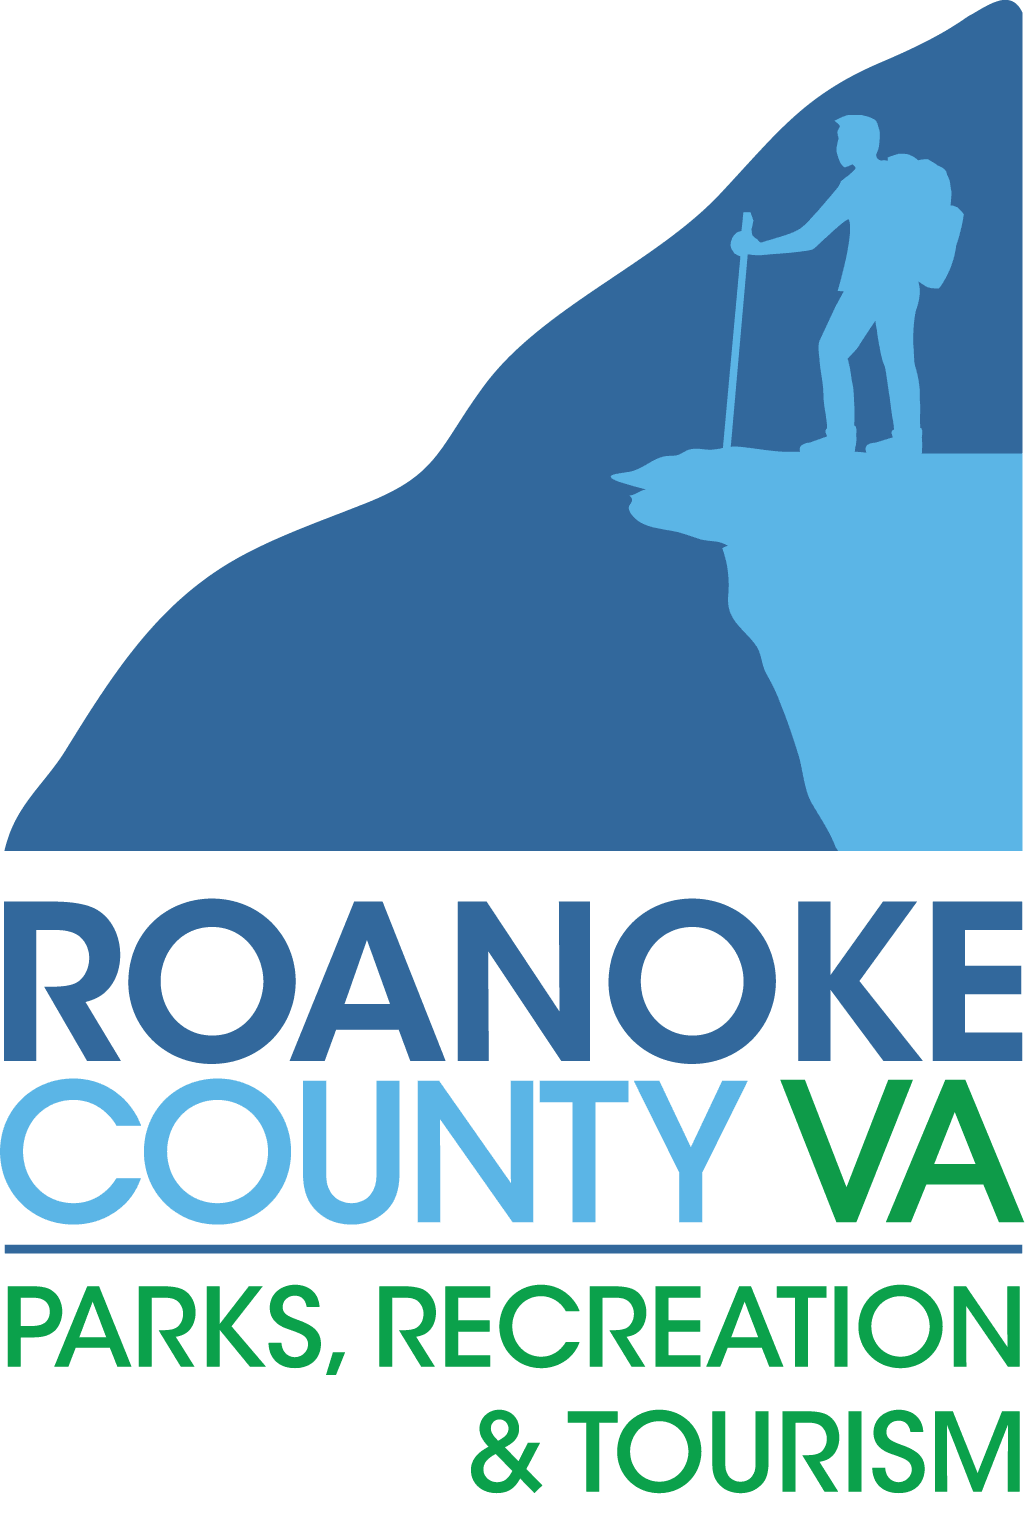 Roanoke County Parks, Recreation and Tourism Opens in new window